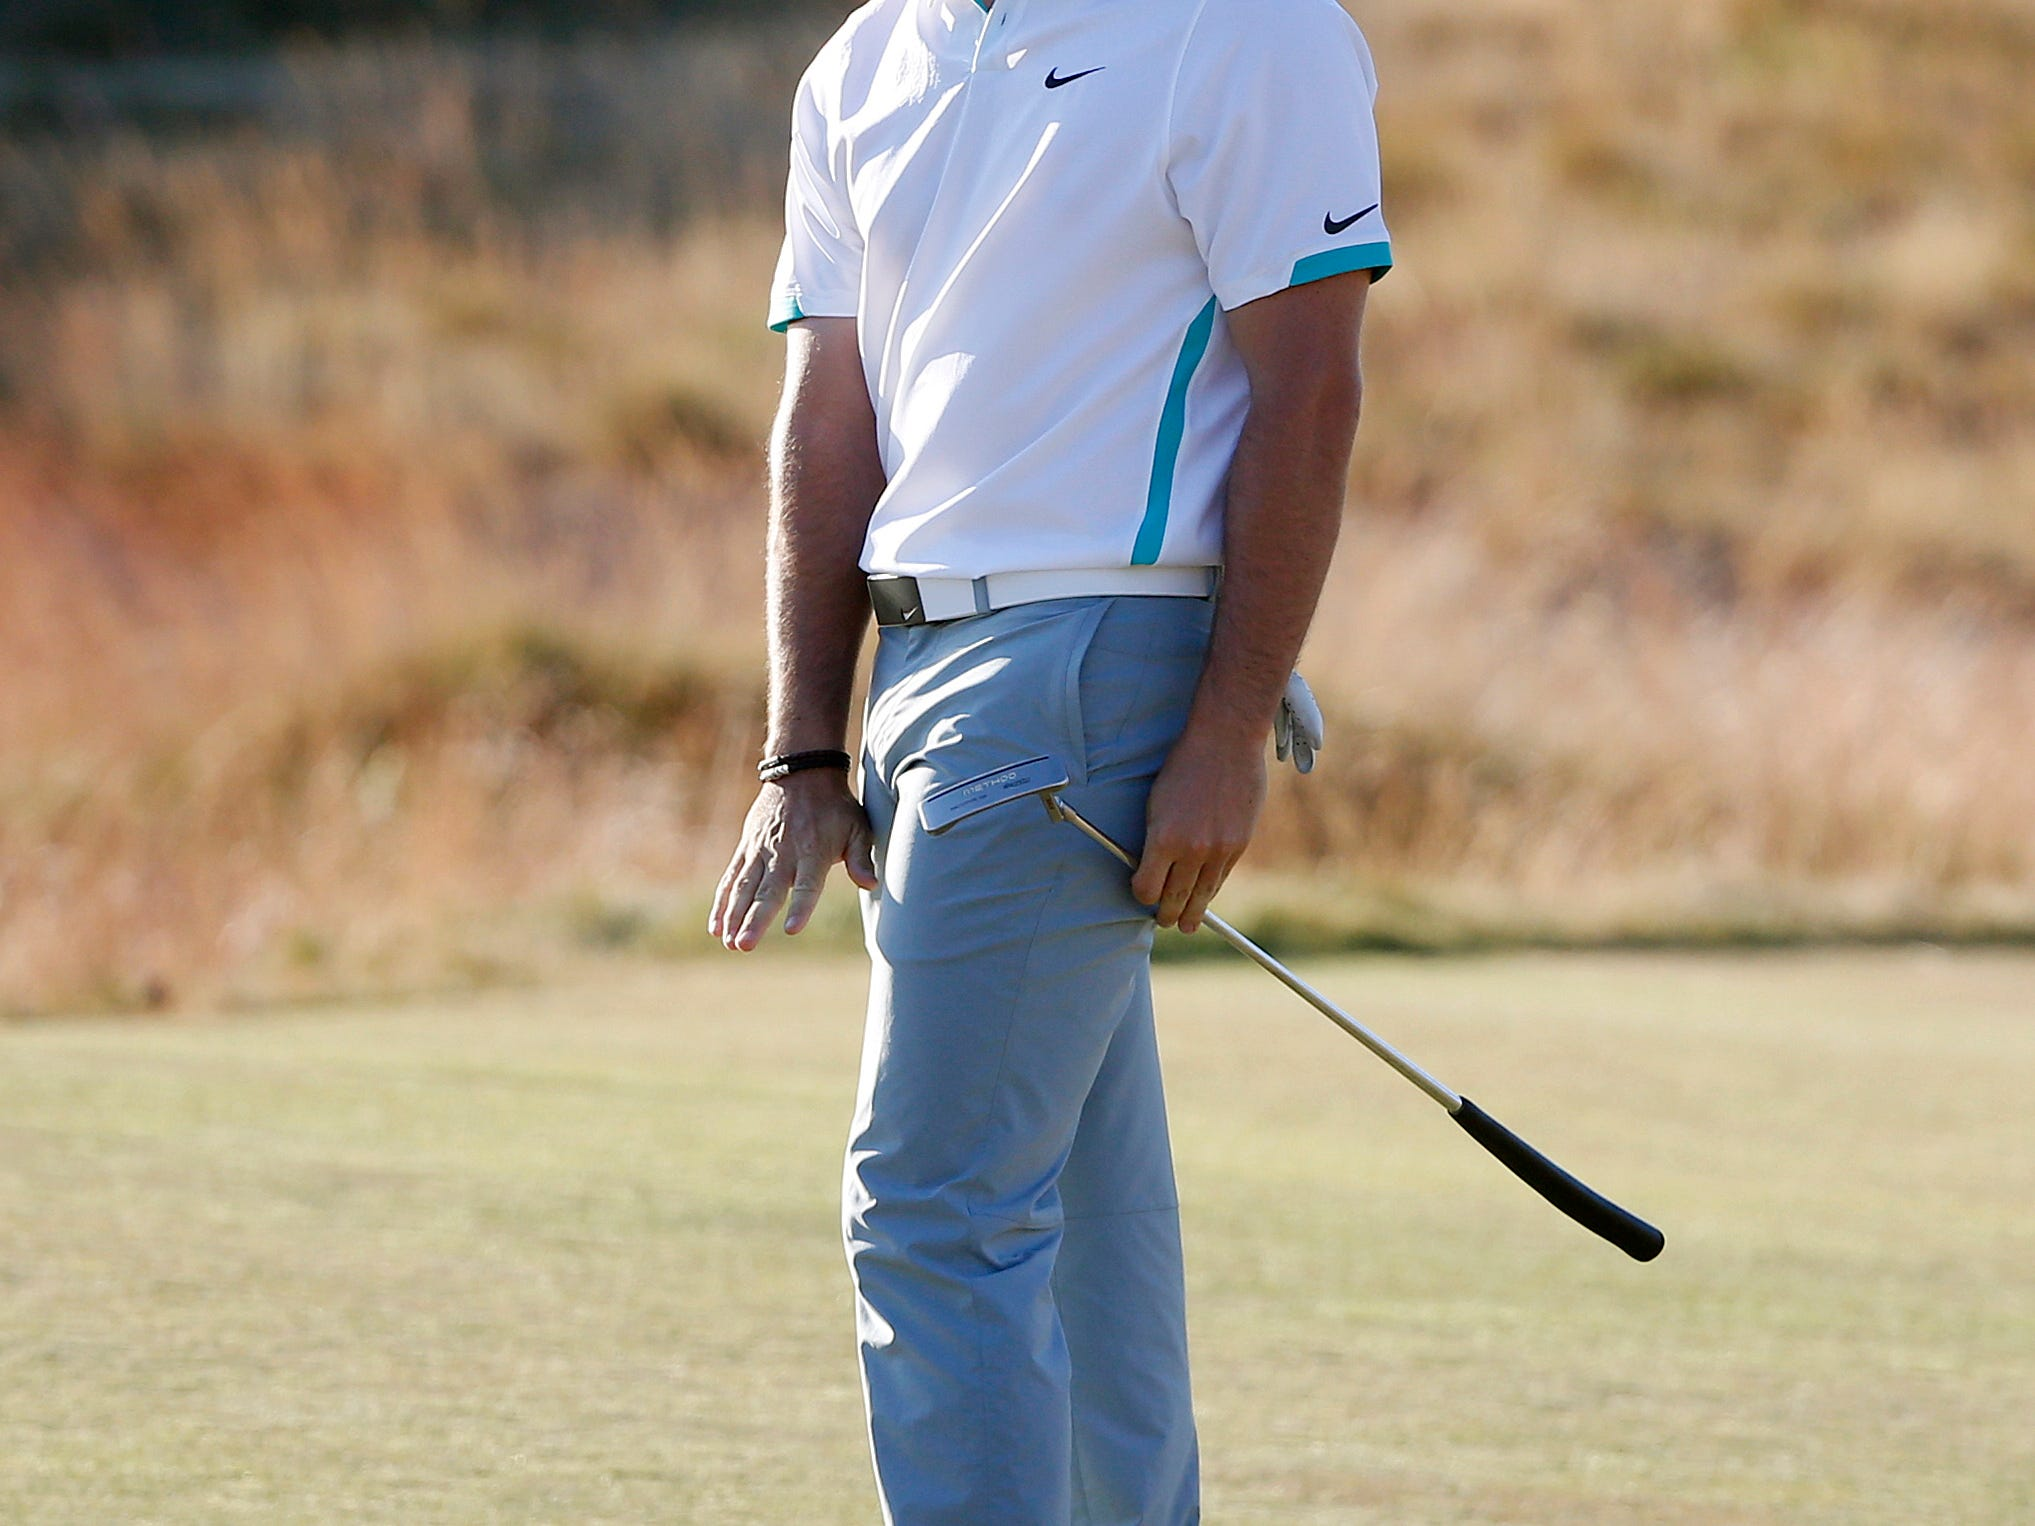 Rory McIlroy, of Northern Ireland, reacts to his putt on the 18th hole during the second round of the U.S. Open golf tournament at Chambers Bay on Friday, June 19, 2015 in University Place, Wash. (AP Photo/Lenny Ignelzi)